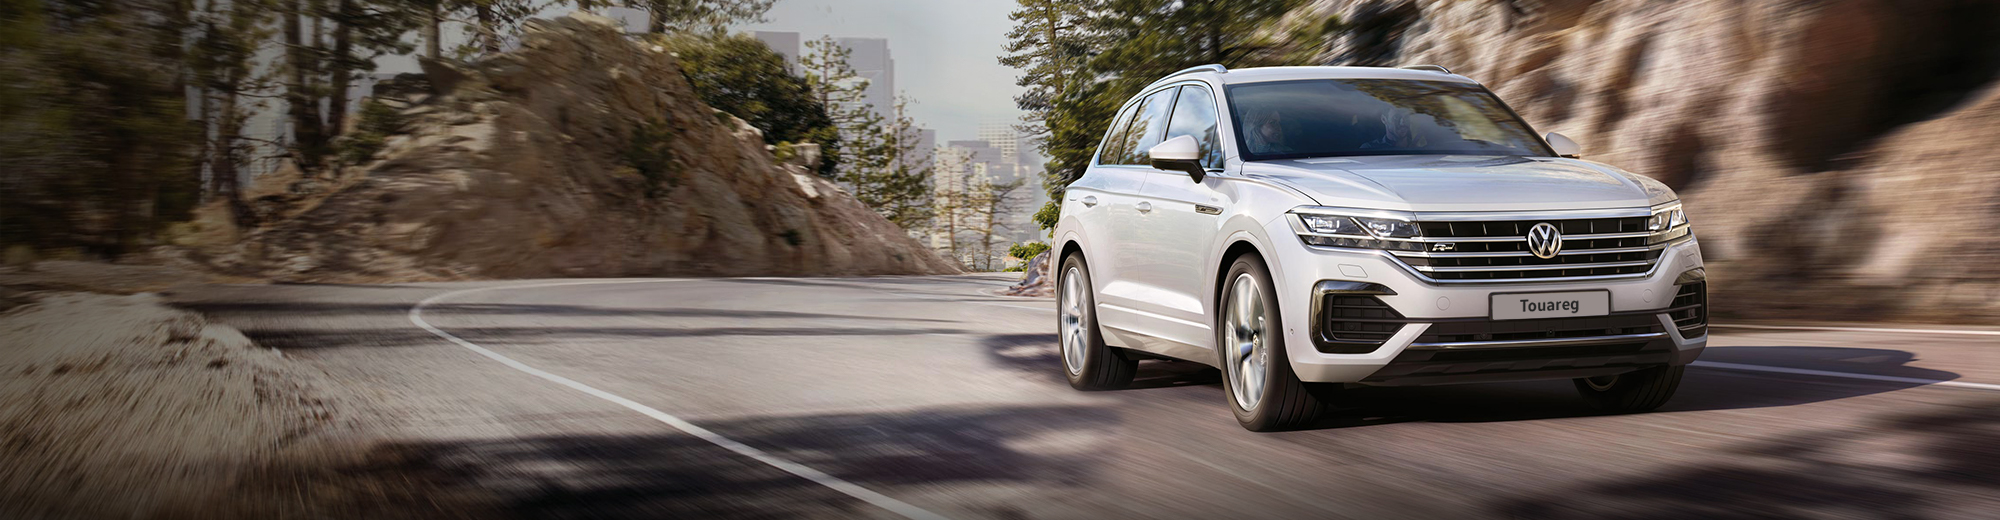 New Touareg - coming soon